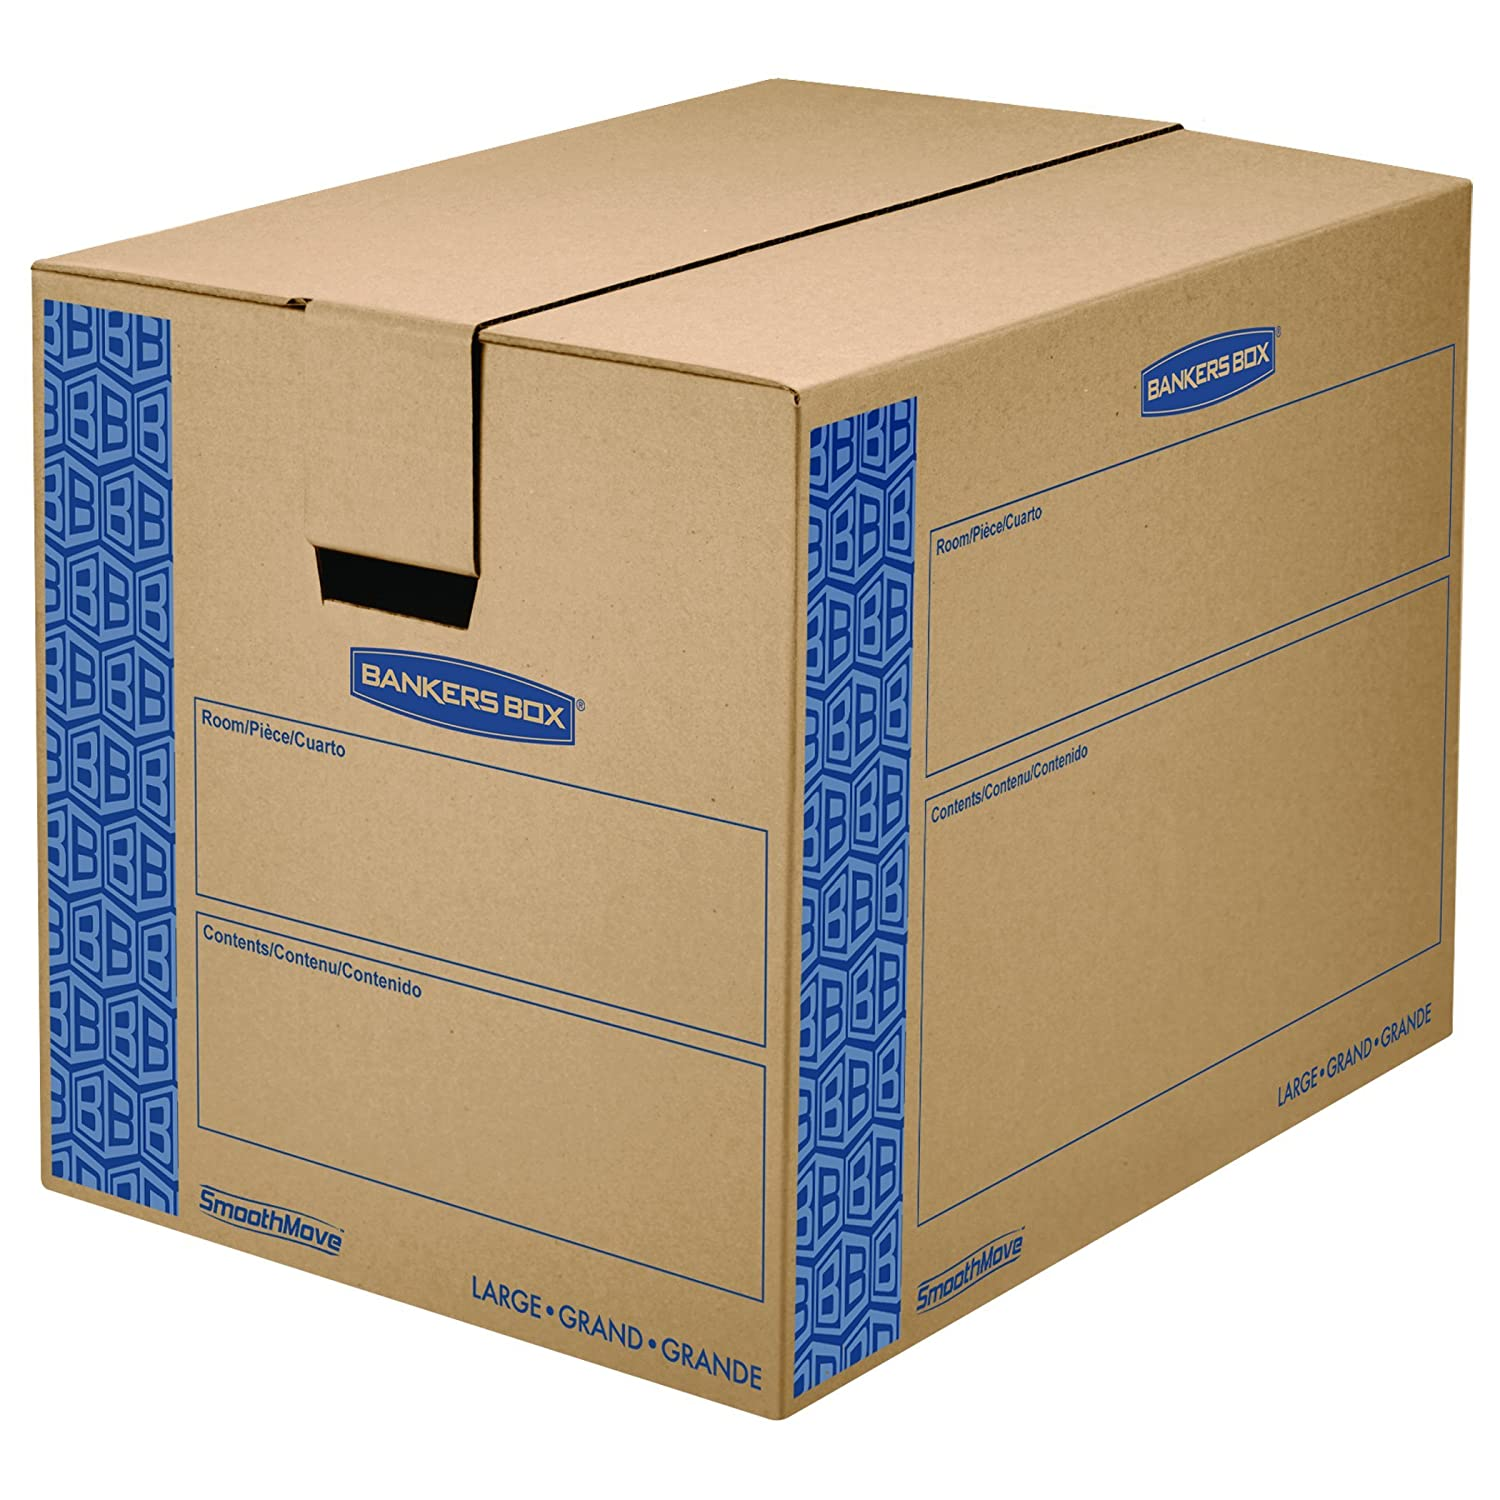 Amazon : Bankers Box Smoothmove Prime Moving Boxes, Tapefree And  Fastfold Assembly, Large, 24 X 18 X 18 Inches, 6 Pack (0062901) : Box  Mailers